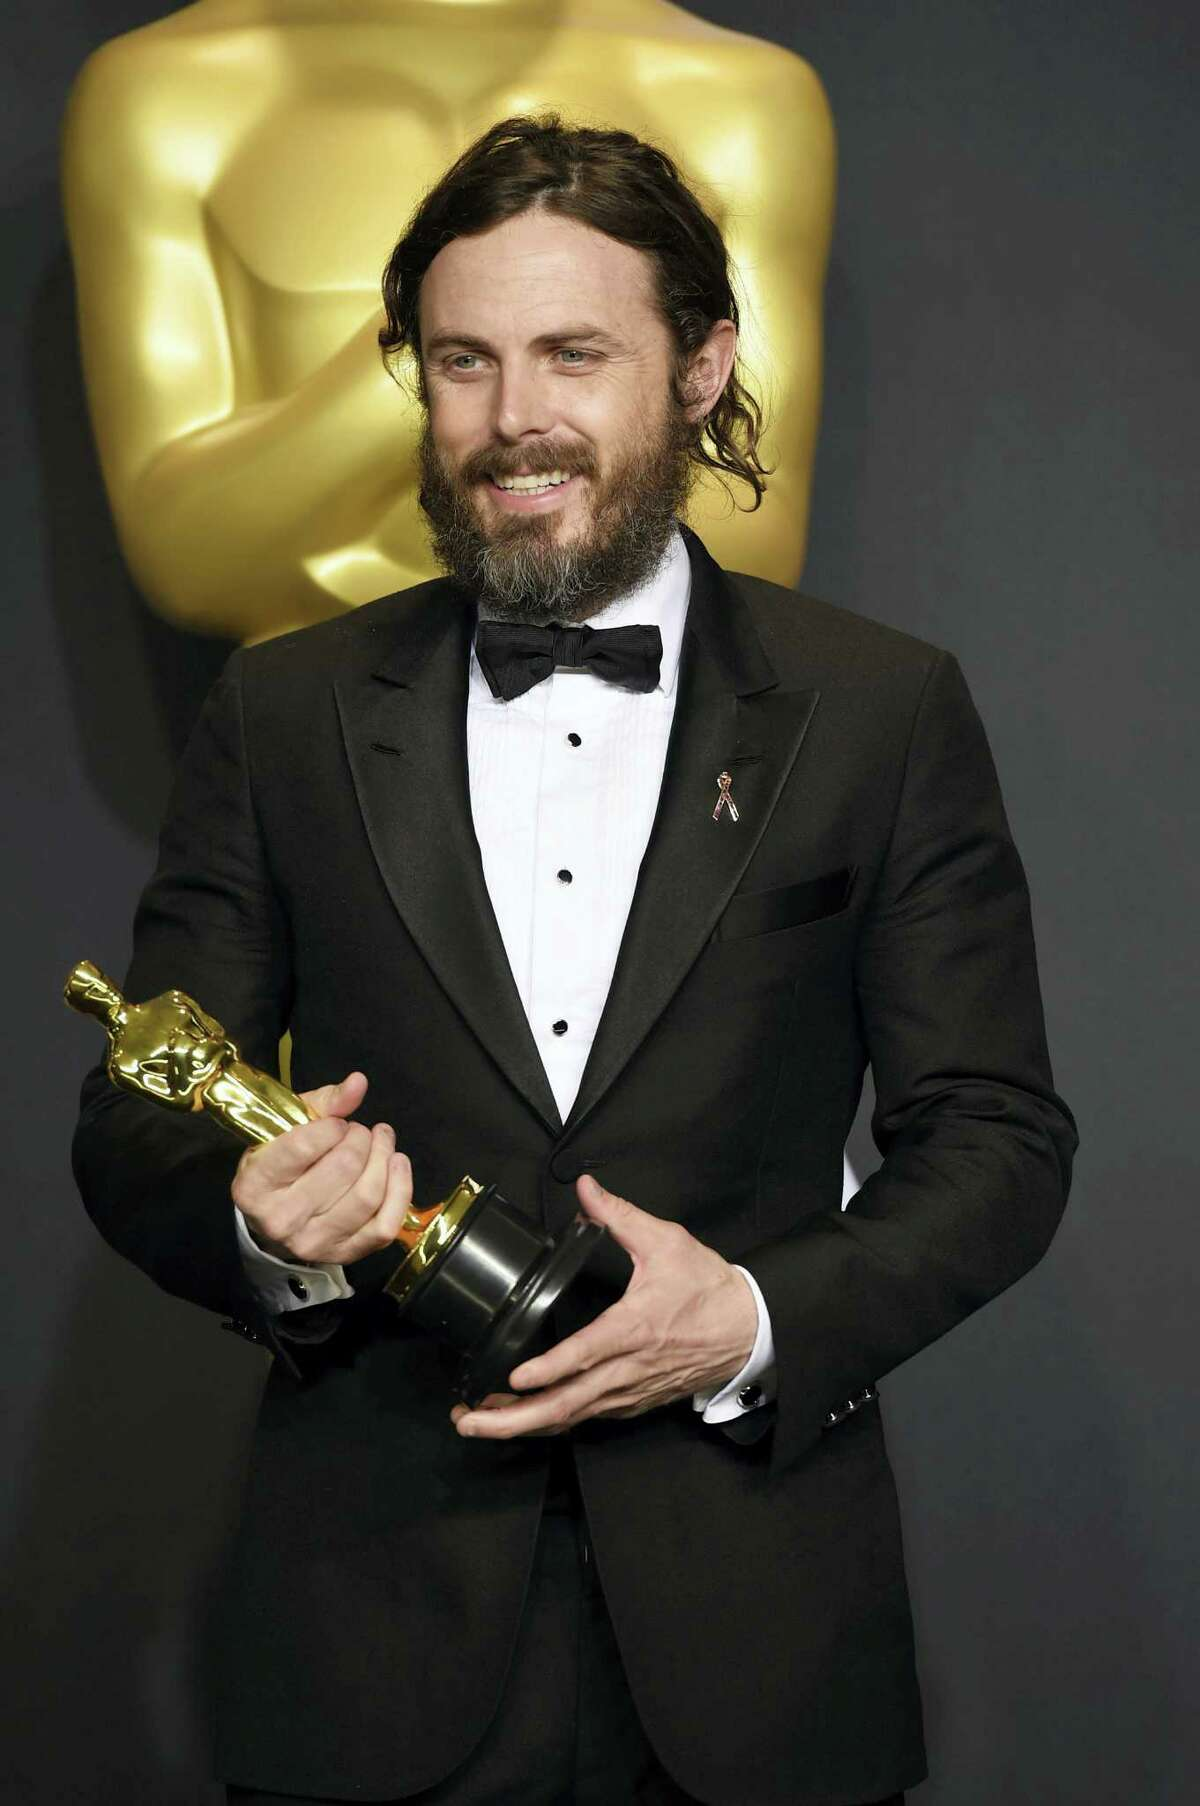 """Casey Affleck poses in the press room with the award for best actor in a leading role for """"Manchester by the Sea"""" at the Oscars on Feb. 26, 2017 at the Dolby Theatre in Los Angeles."""